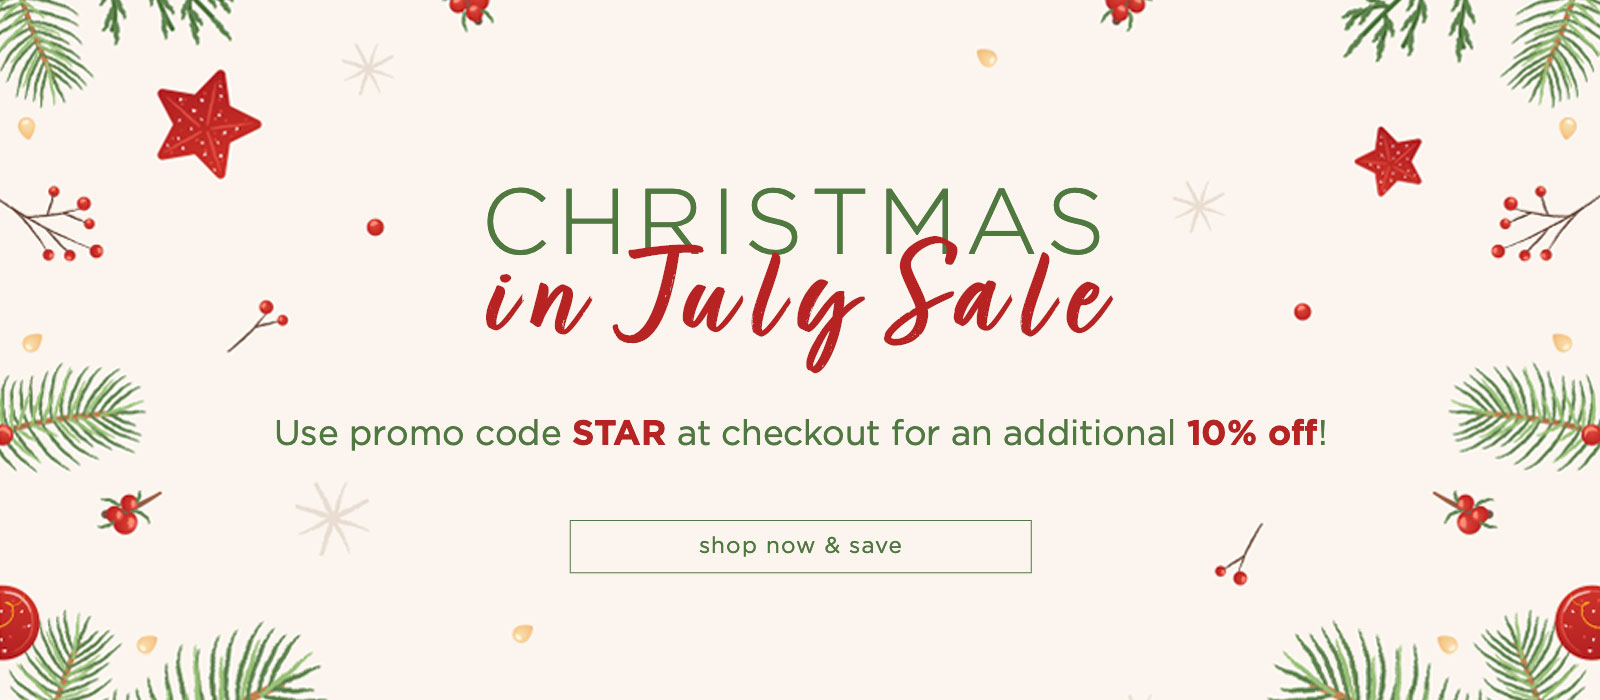 ChristmasJuly Banners 0